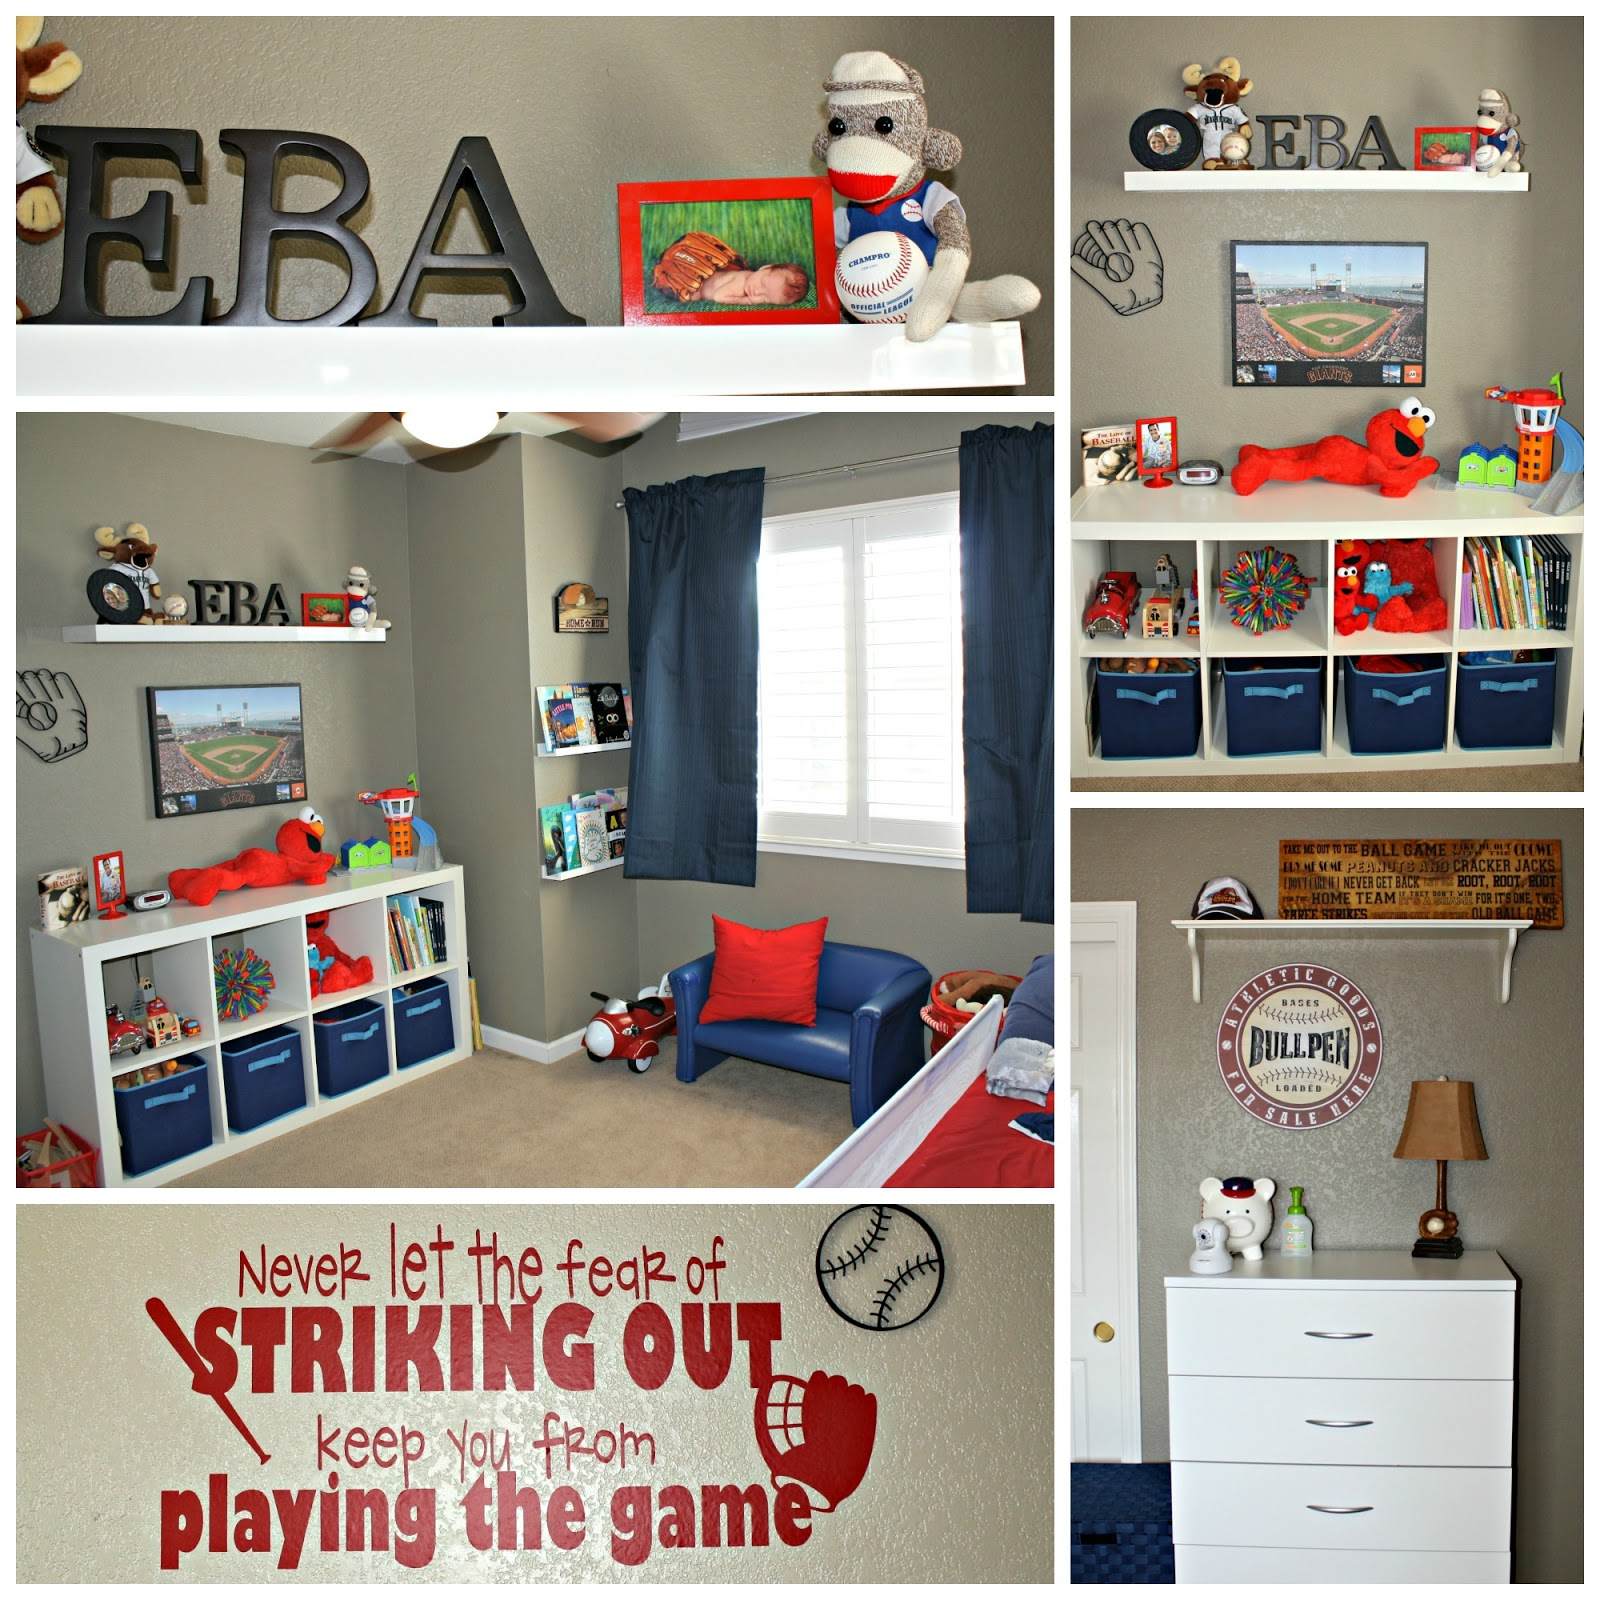 Dad Did Such A Great Job Decorating The Baseball Themed Room With Accents Of Red White And Blue Its Perfect For Loving Toddler